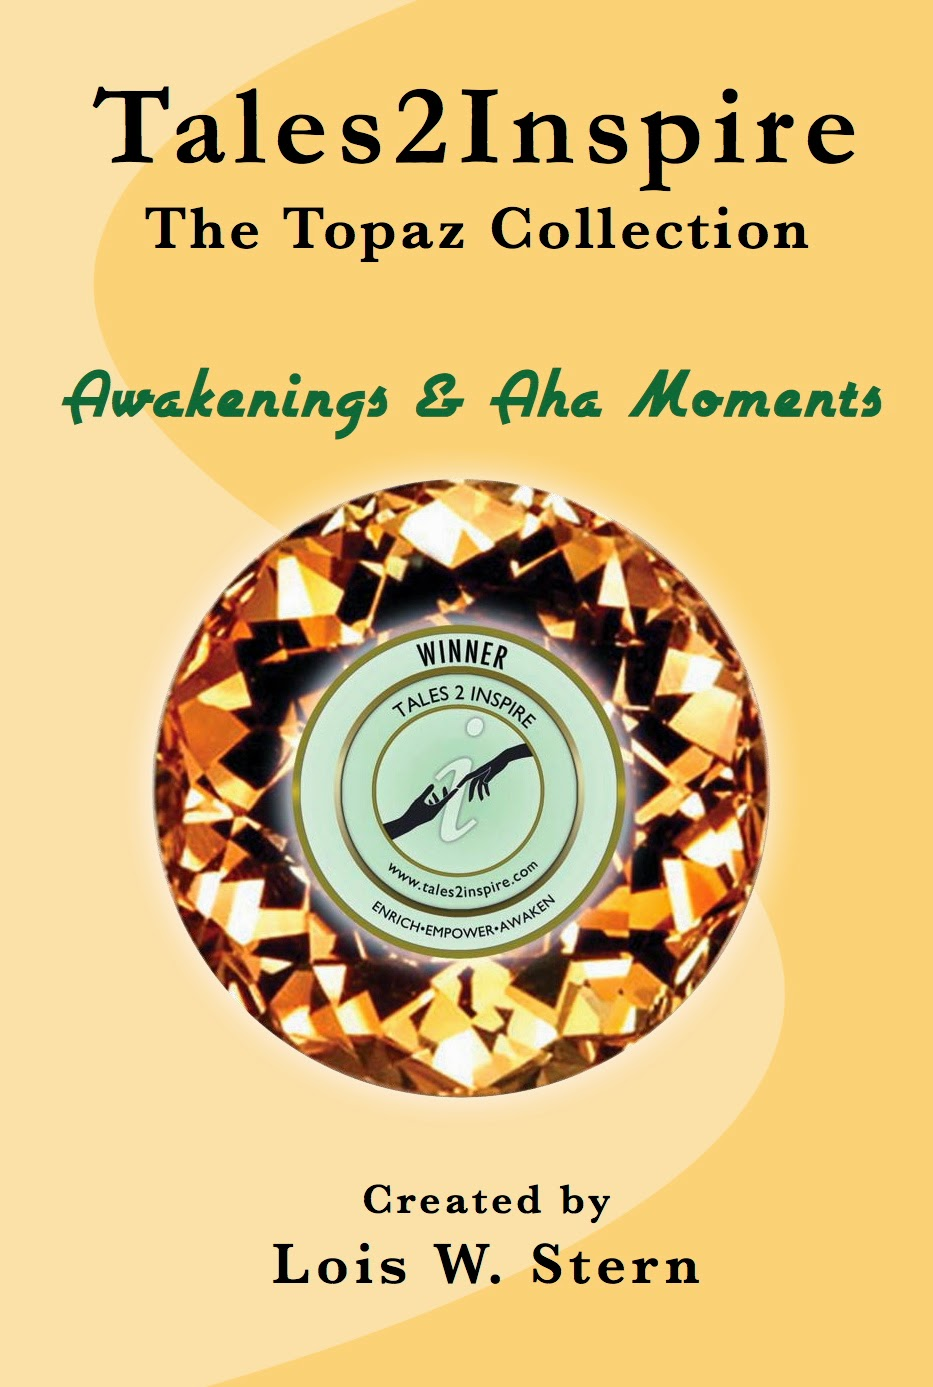 http://www.amazon.com/Tales2Inspire-Topaz-Collection-Awakenings-Moments-ebook/dp/B00GNL1W5C/ref=sr_1_3?s=books&ie=UTF8&qid=1395779086&sr=1-3&keywords=lois+w.+stern